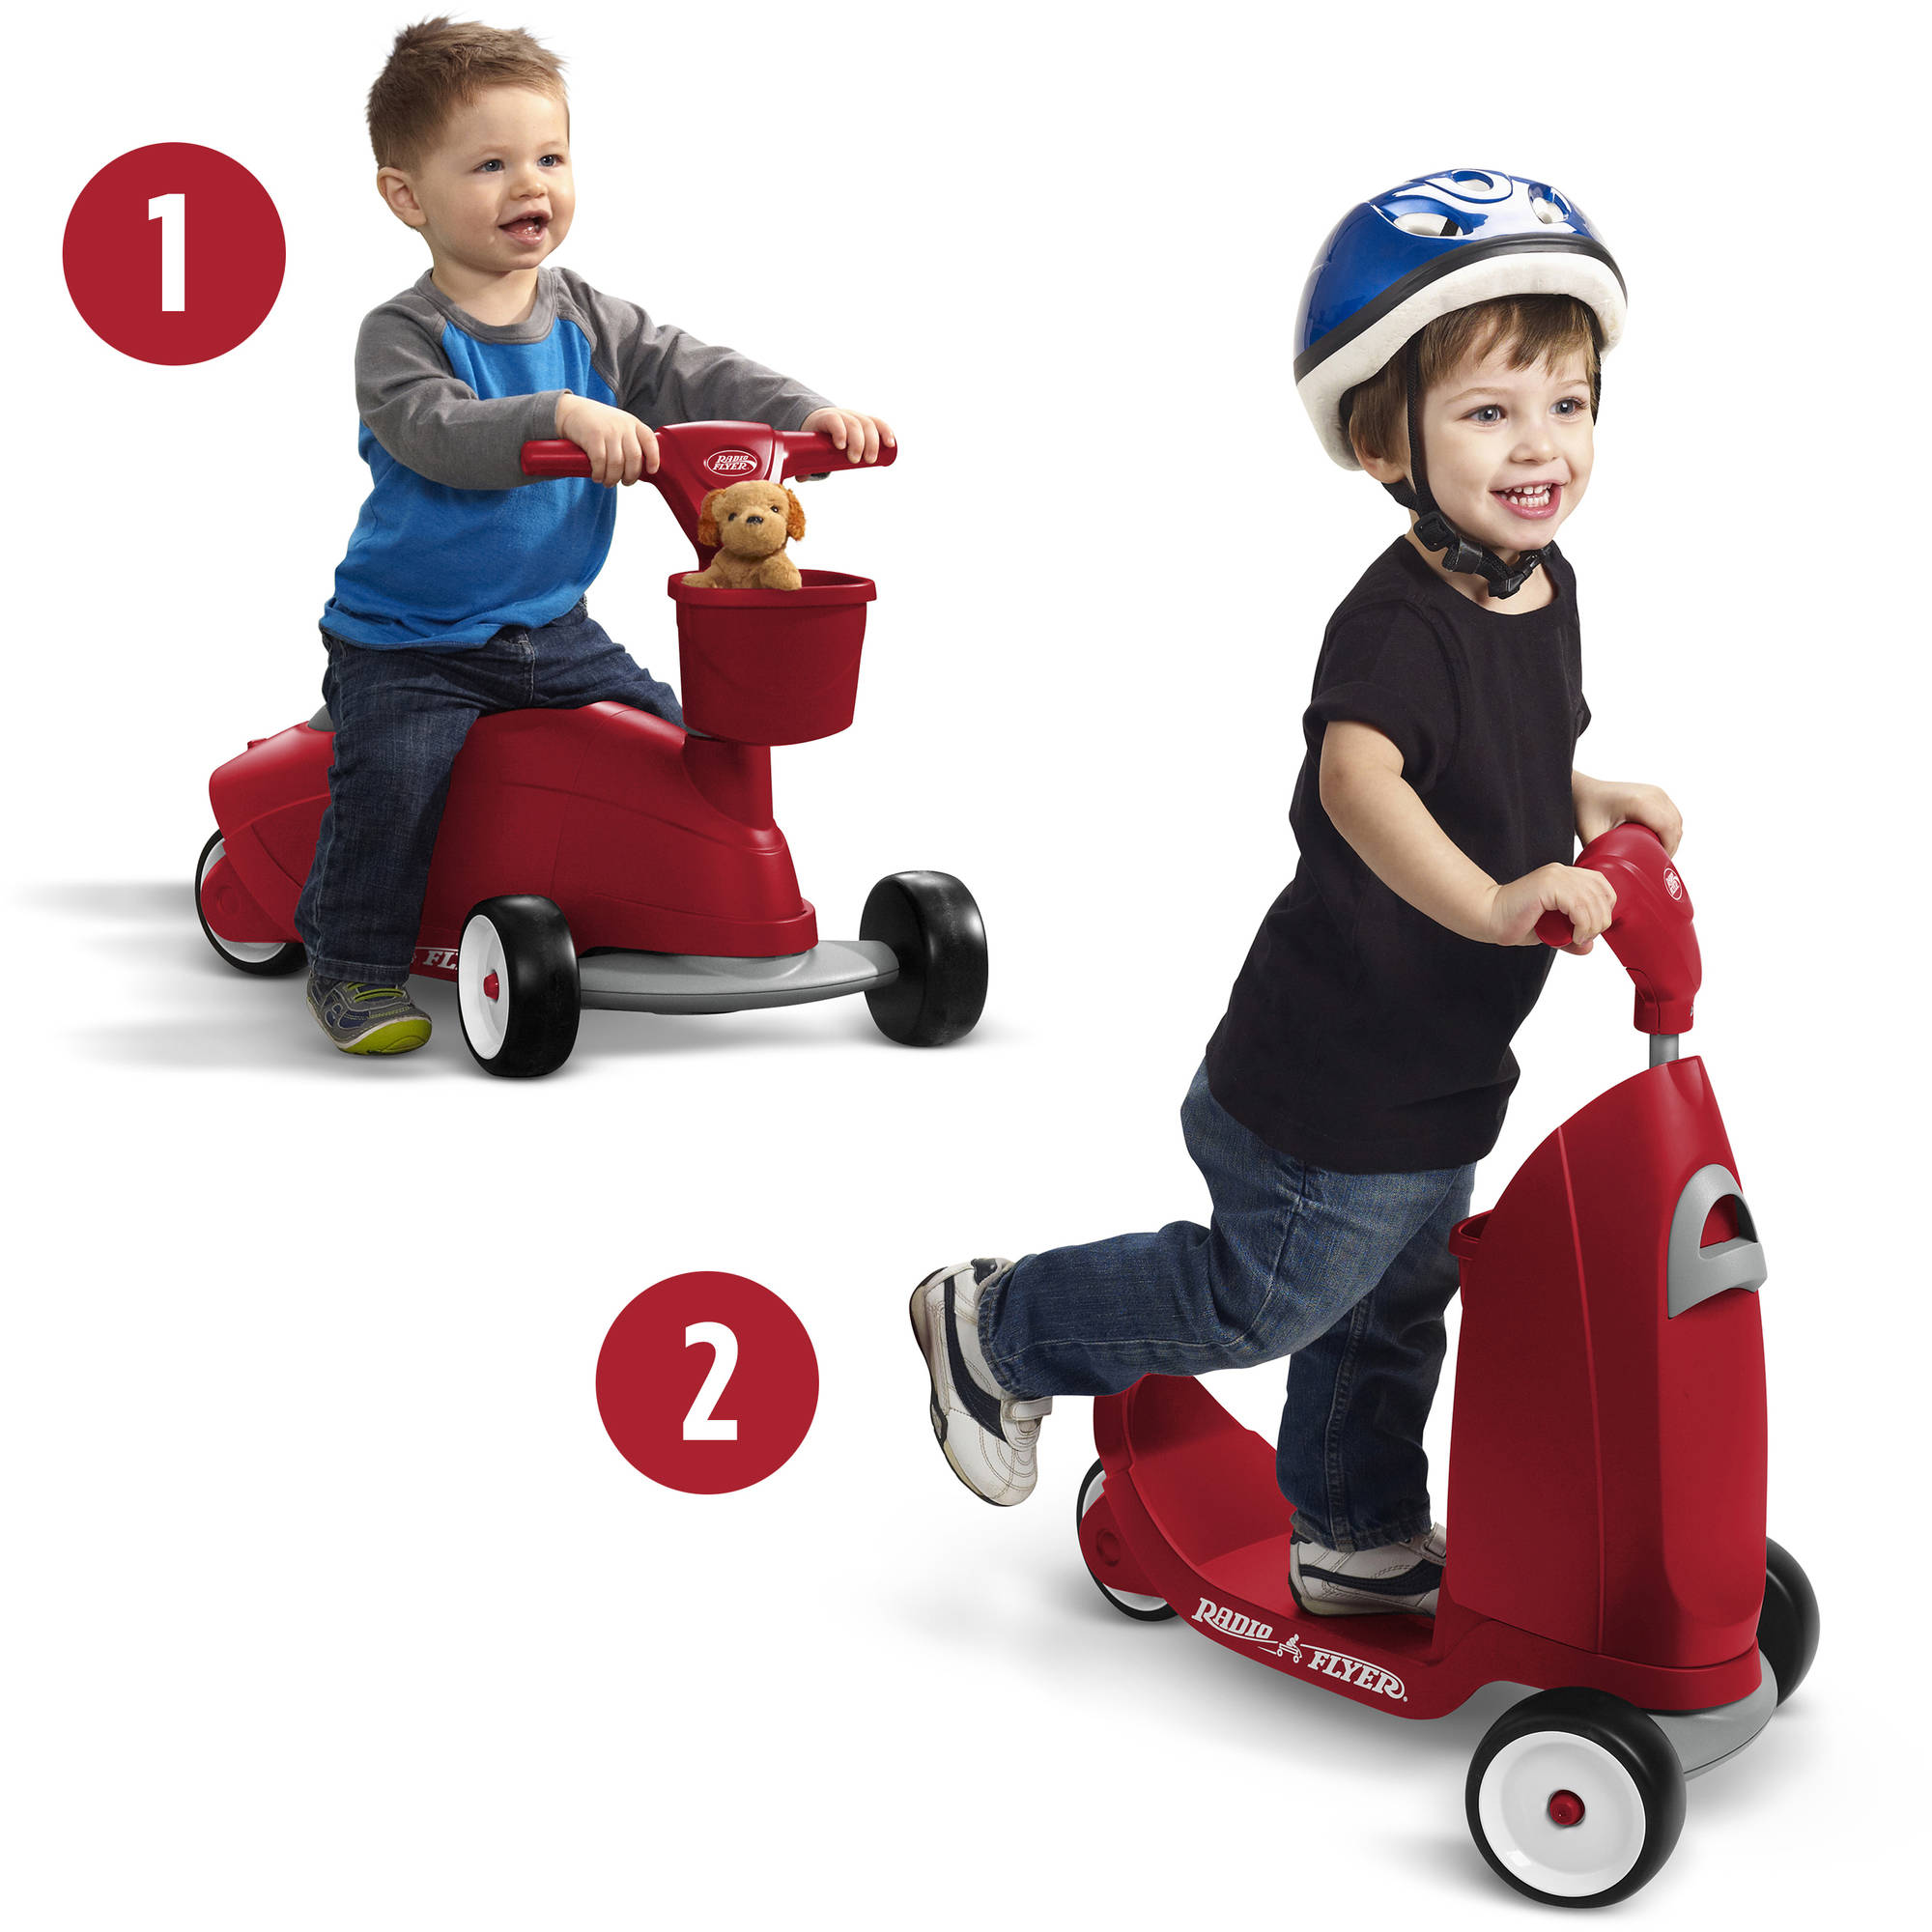 Radio Flyer Ride 2 Glide Ride-On/Scooter